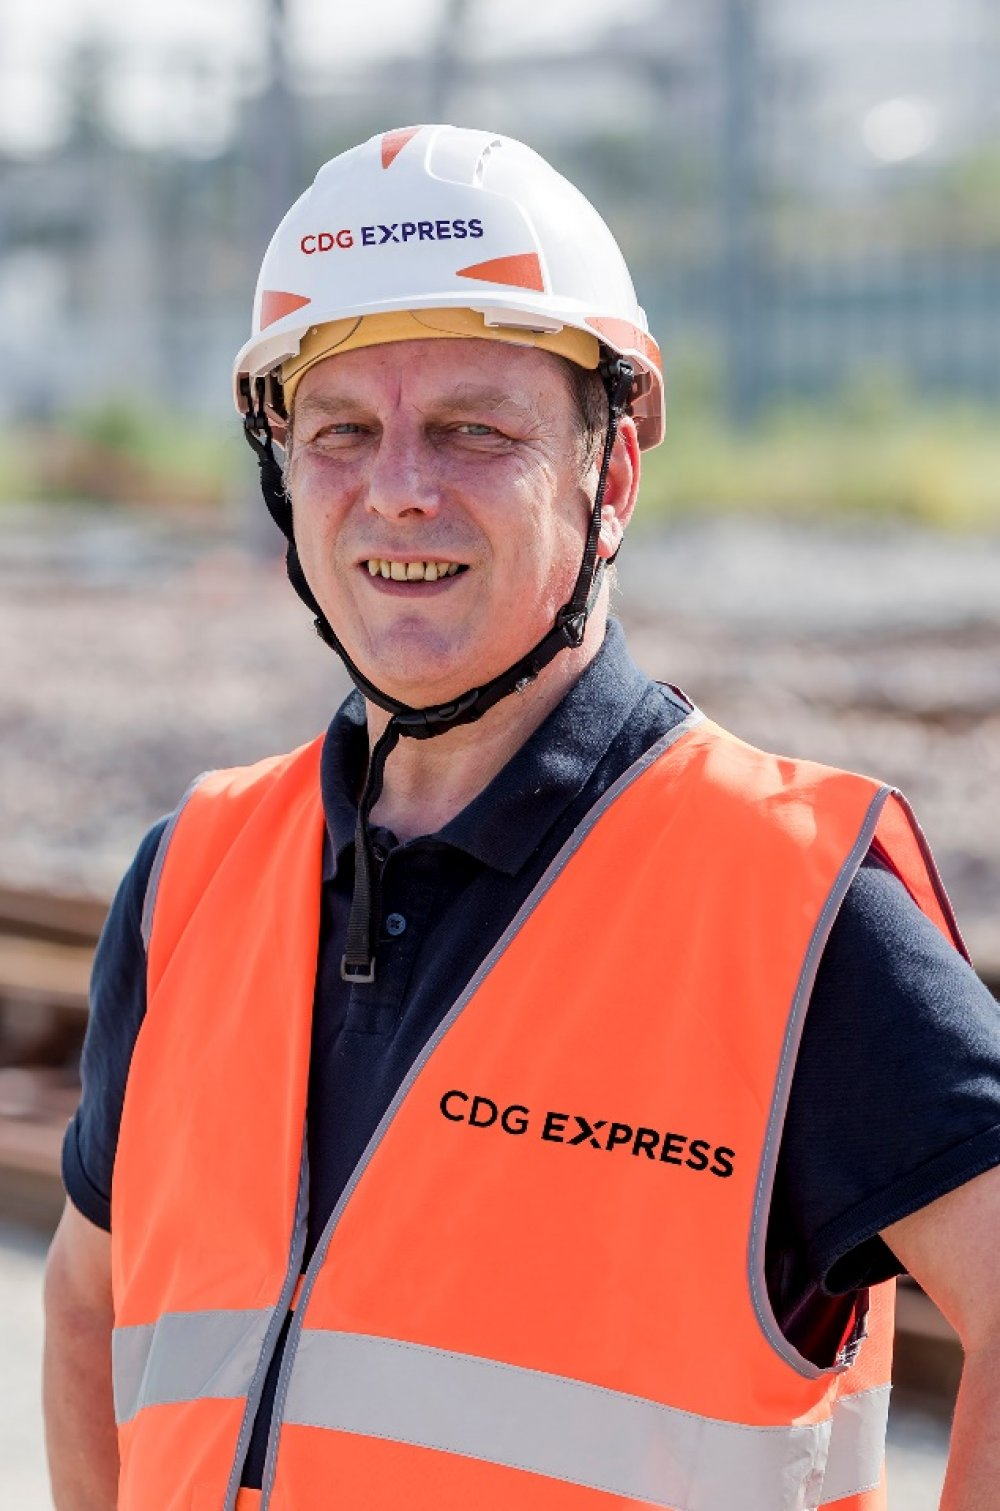 CDG Express - Agent Philippe Noirot